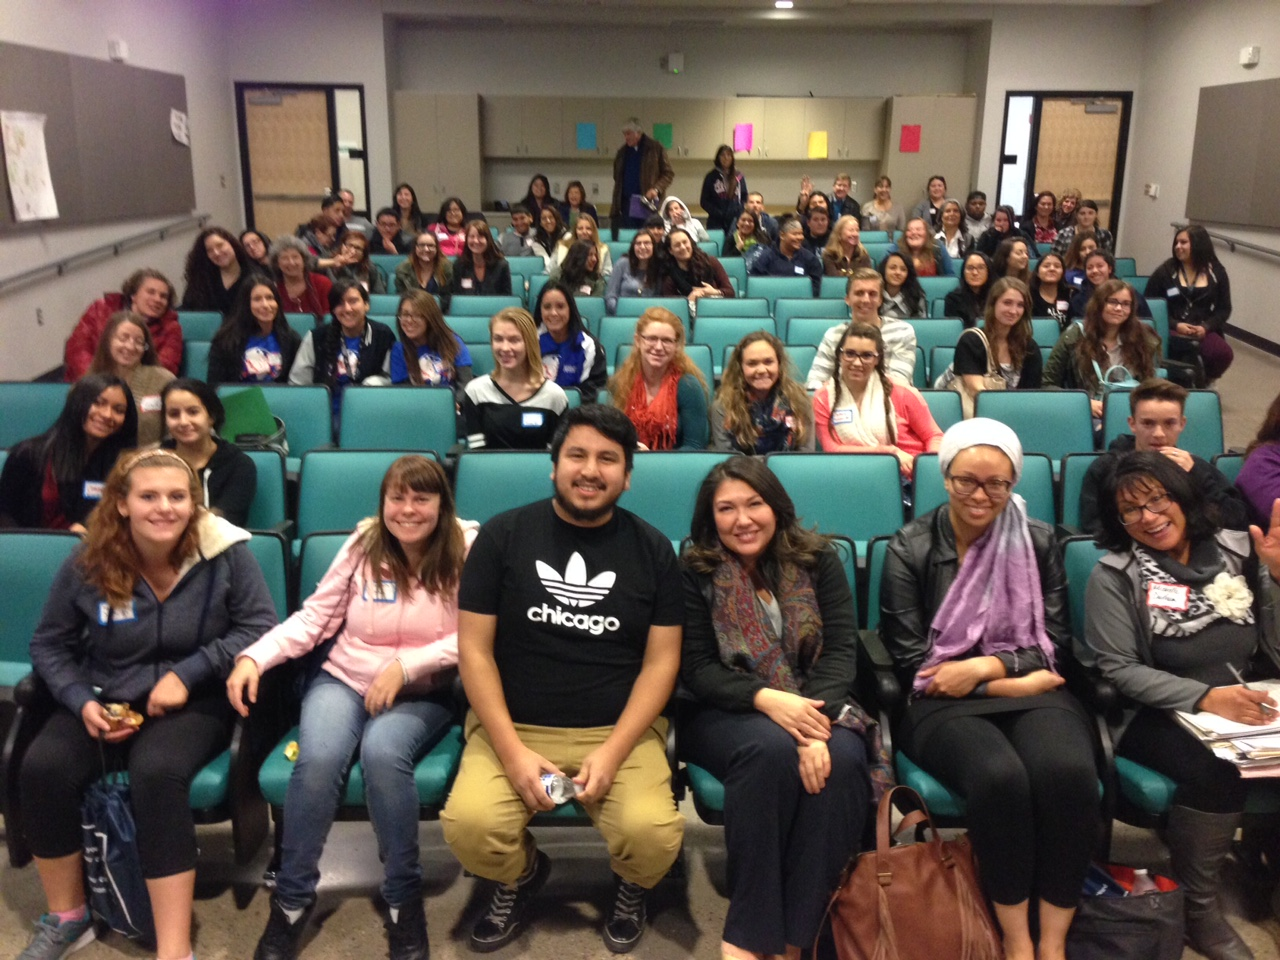 STUDENTS AFTER THE SCREENING POSE WITH ROQUE (FRONT CENTER) FROM THE FILM